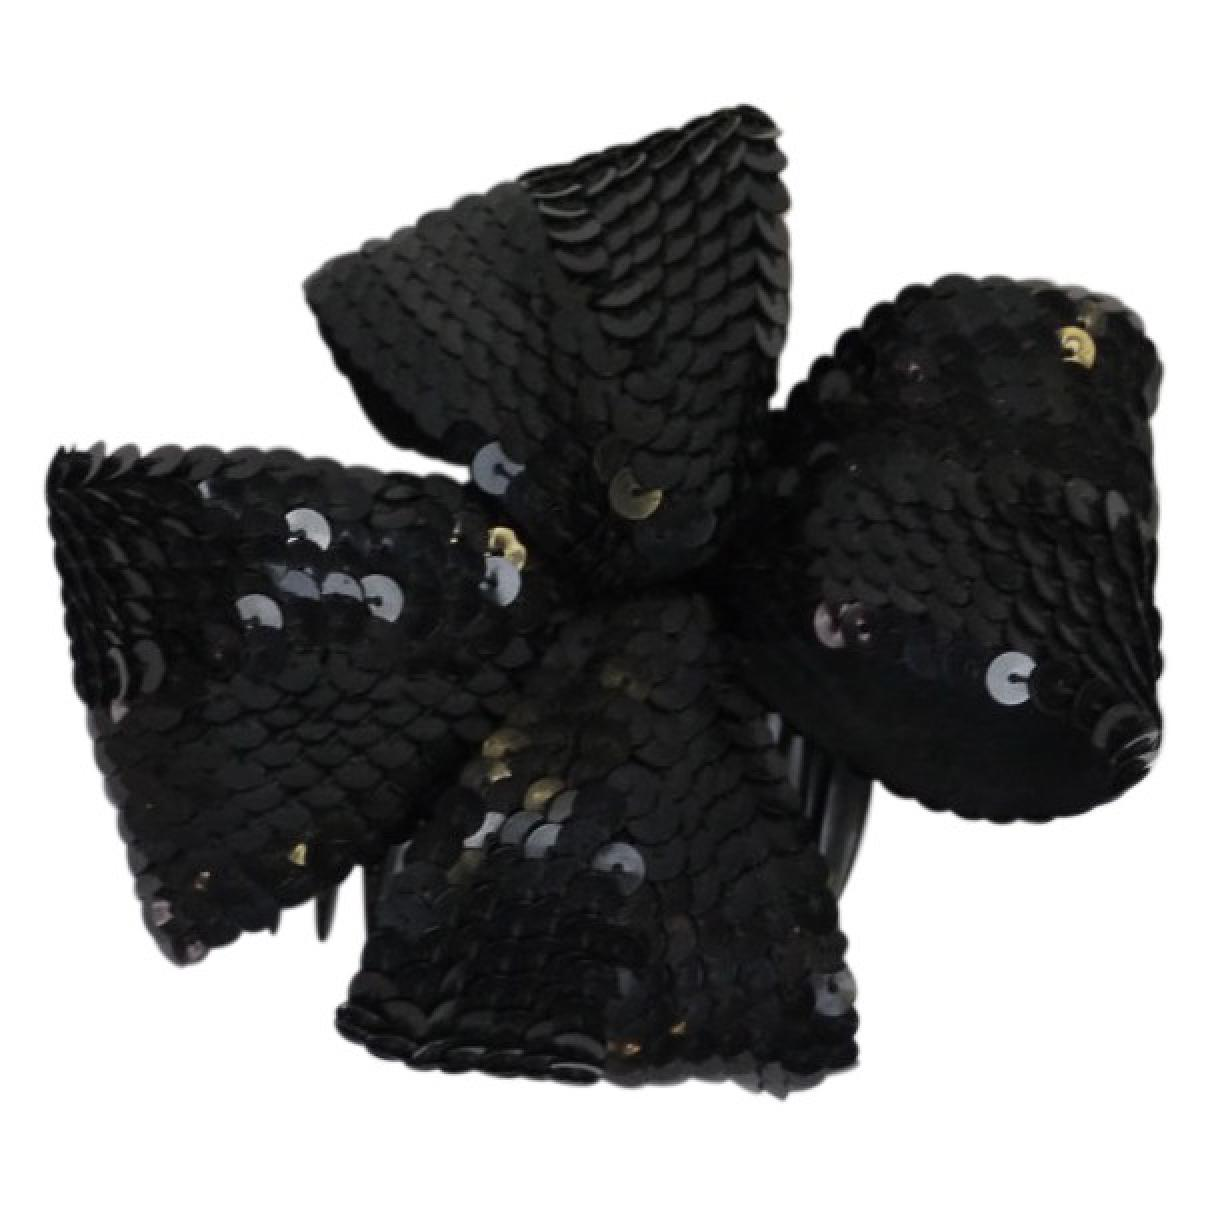 0876e768c5d Lyst - Chanel Pre-owned Hair Accessory in Black